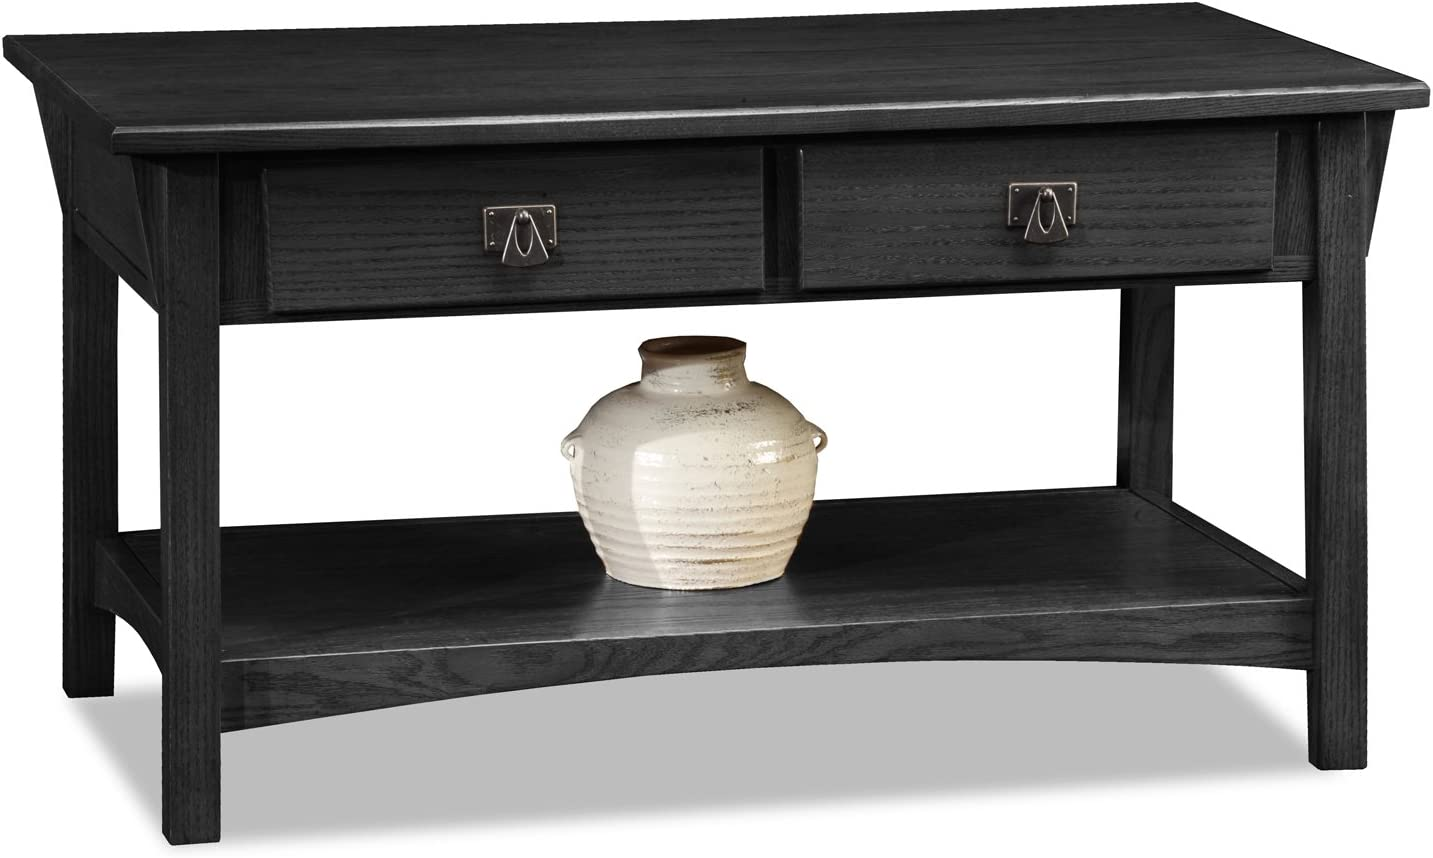 Sale special price Leick Favorite Finds Coffee Slate Max 71% OFF Table